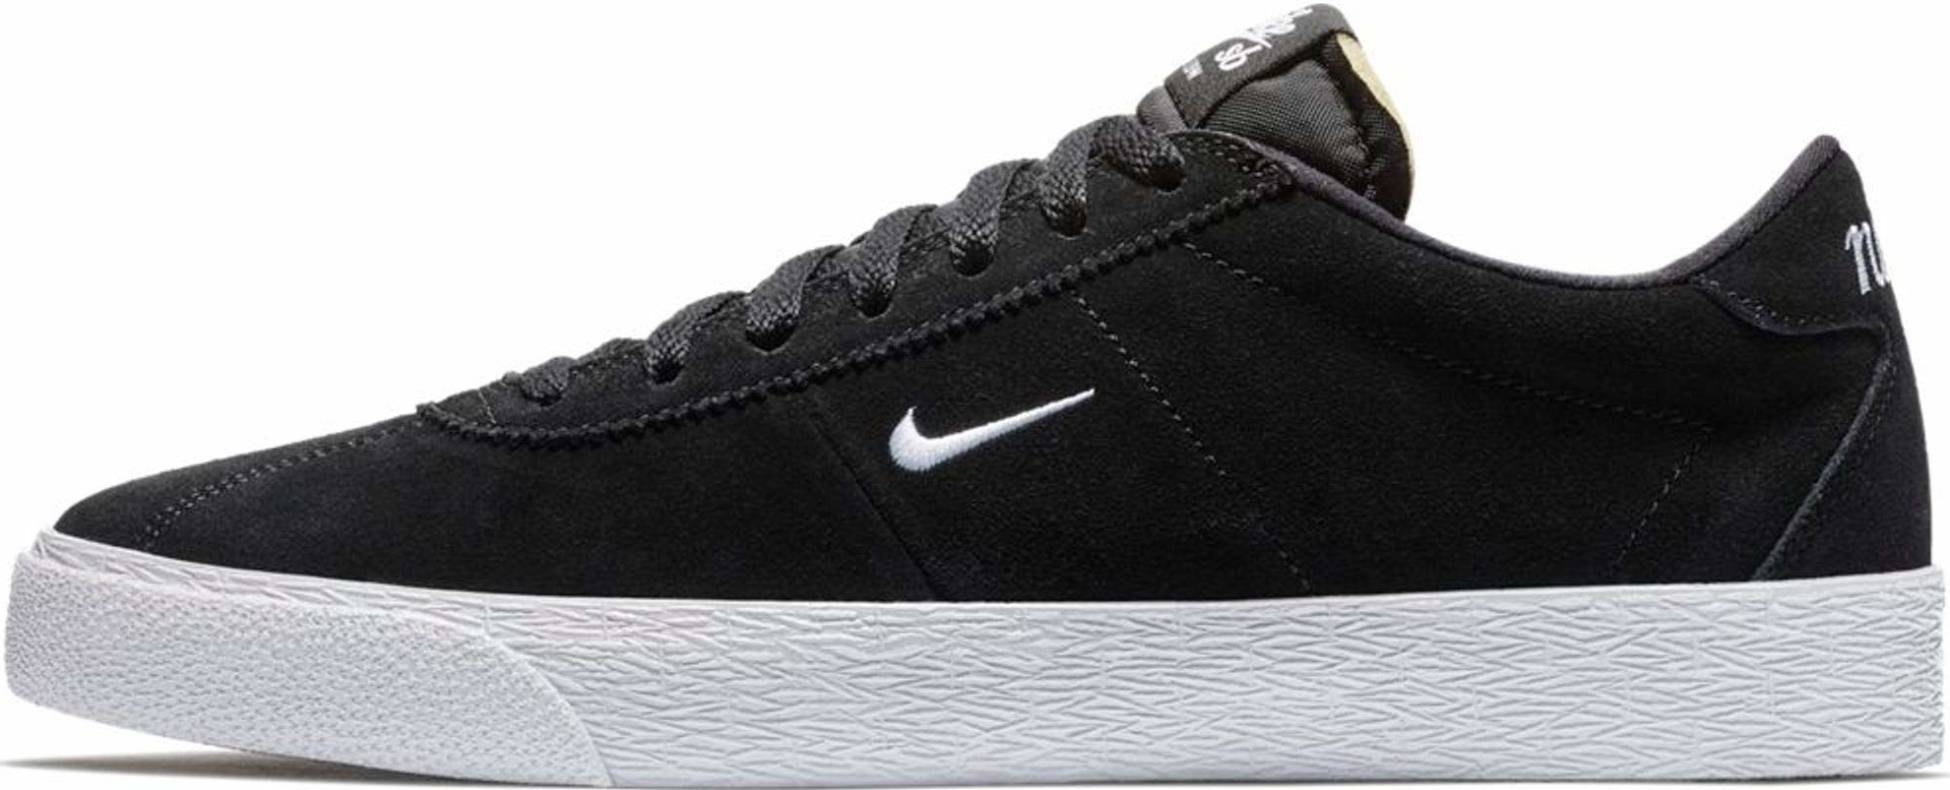 Only $56 + Review of Nike SB Zoom Bruin